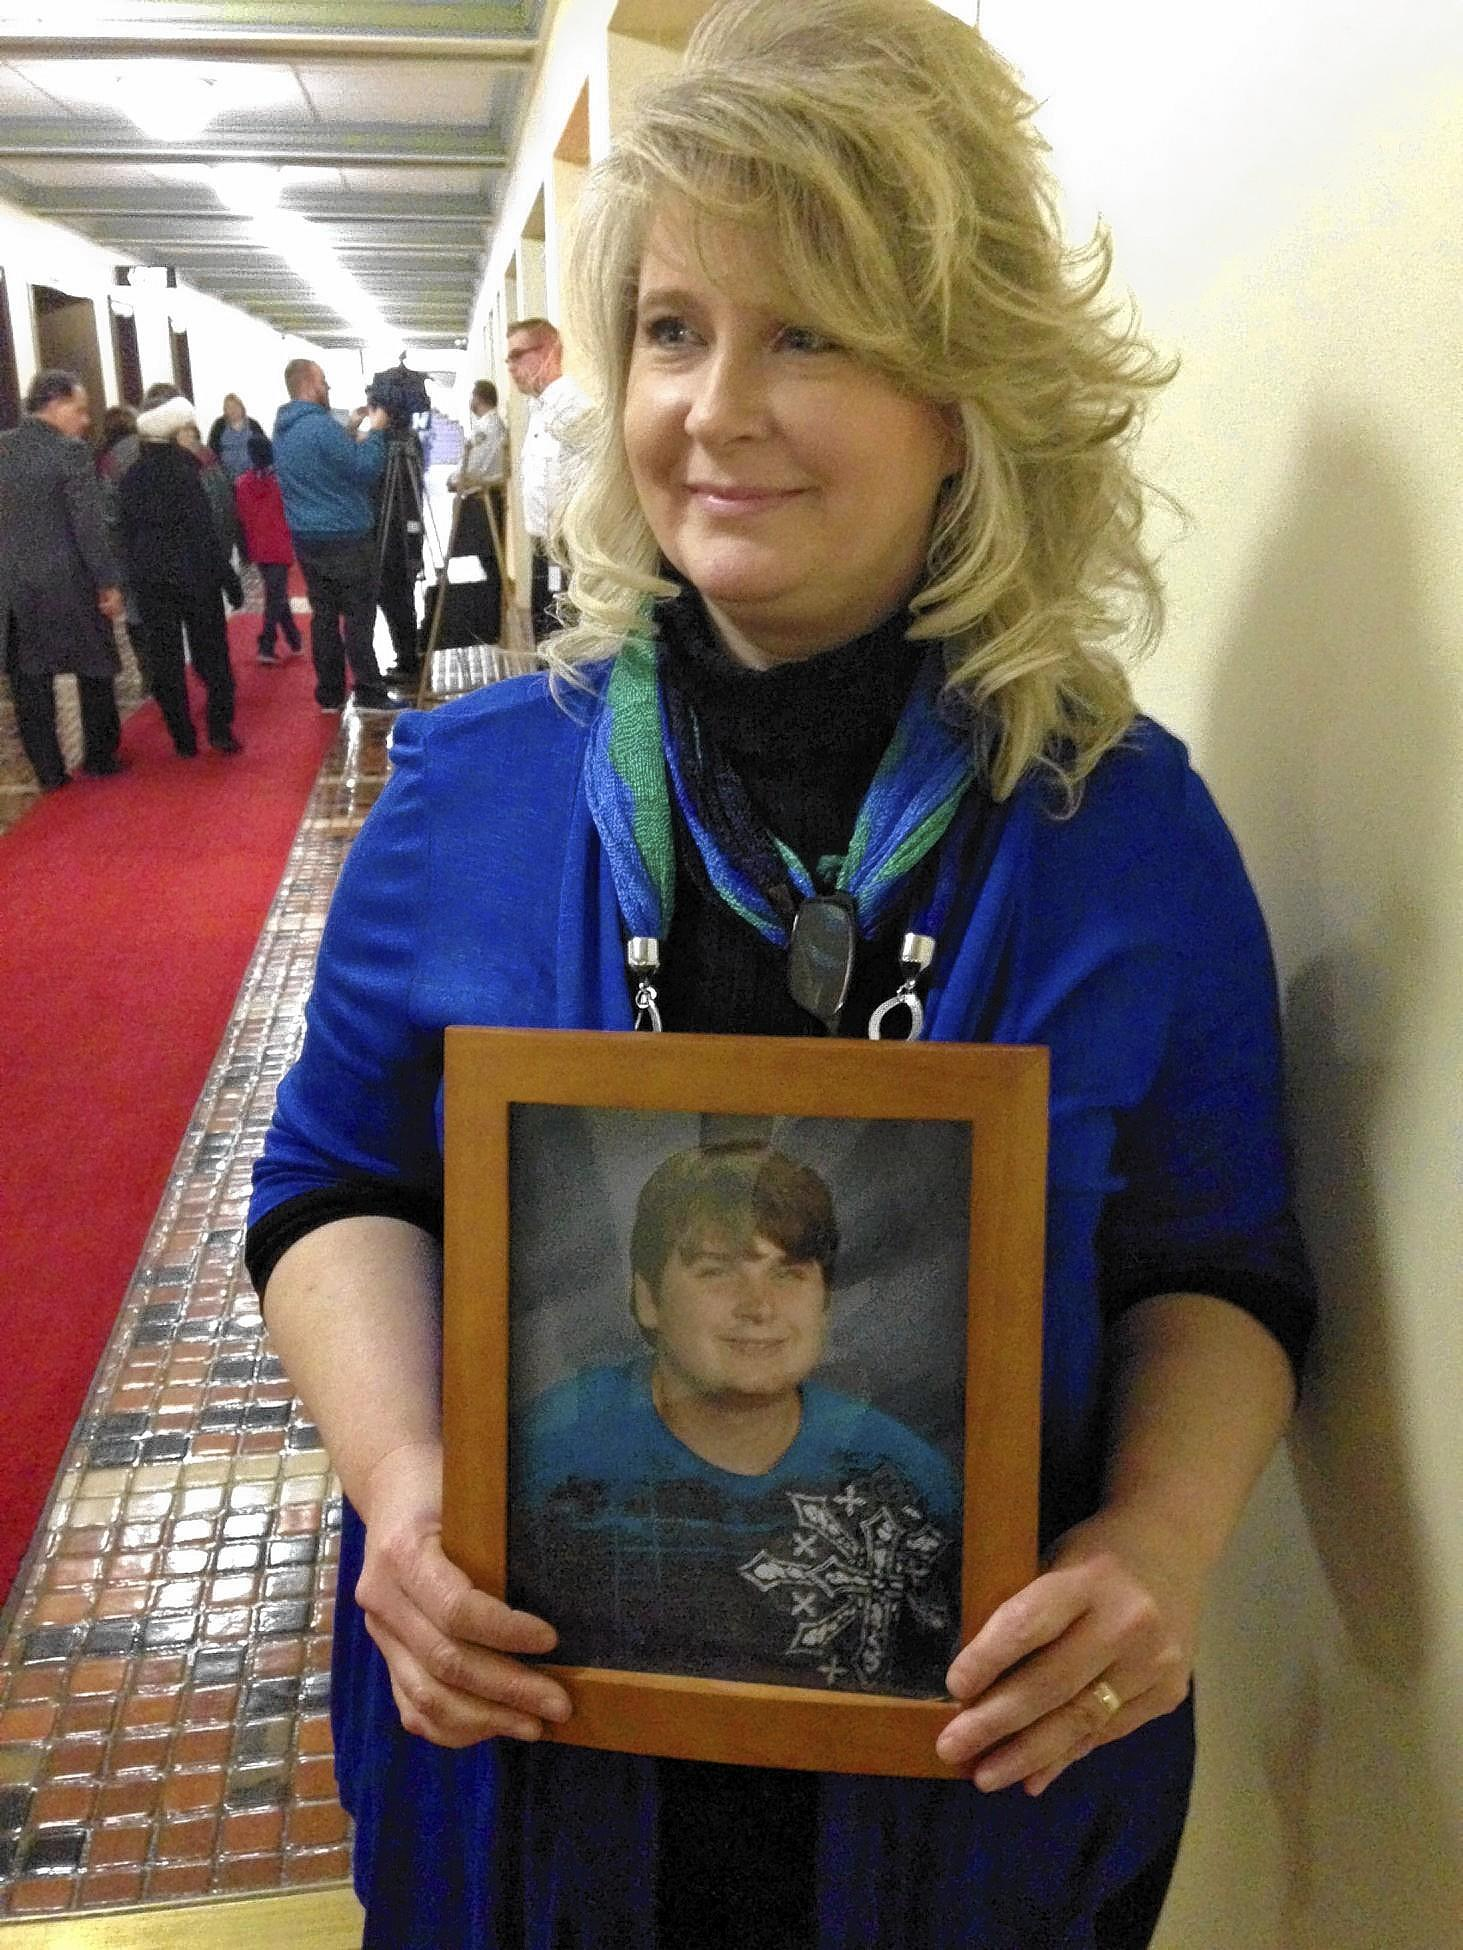 Deena Kenney of Bethlehem holds a picture of her son, Chris, who suffers from epilepsy. She testified Tuesday in Harrisburg at a legislative hearing on a bill to allow medical marijuana in Pennsylvania.